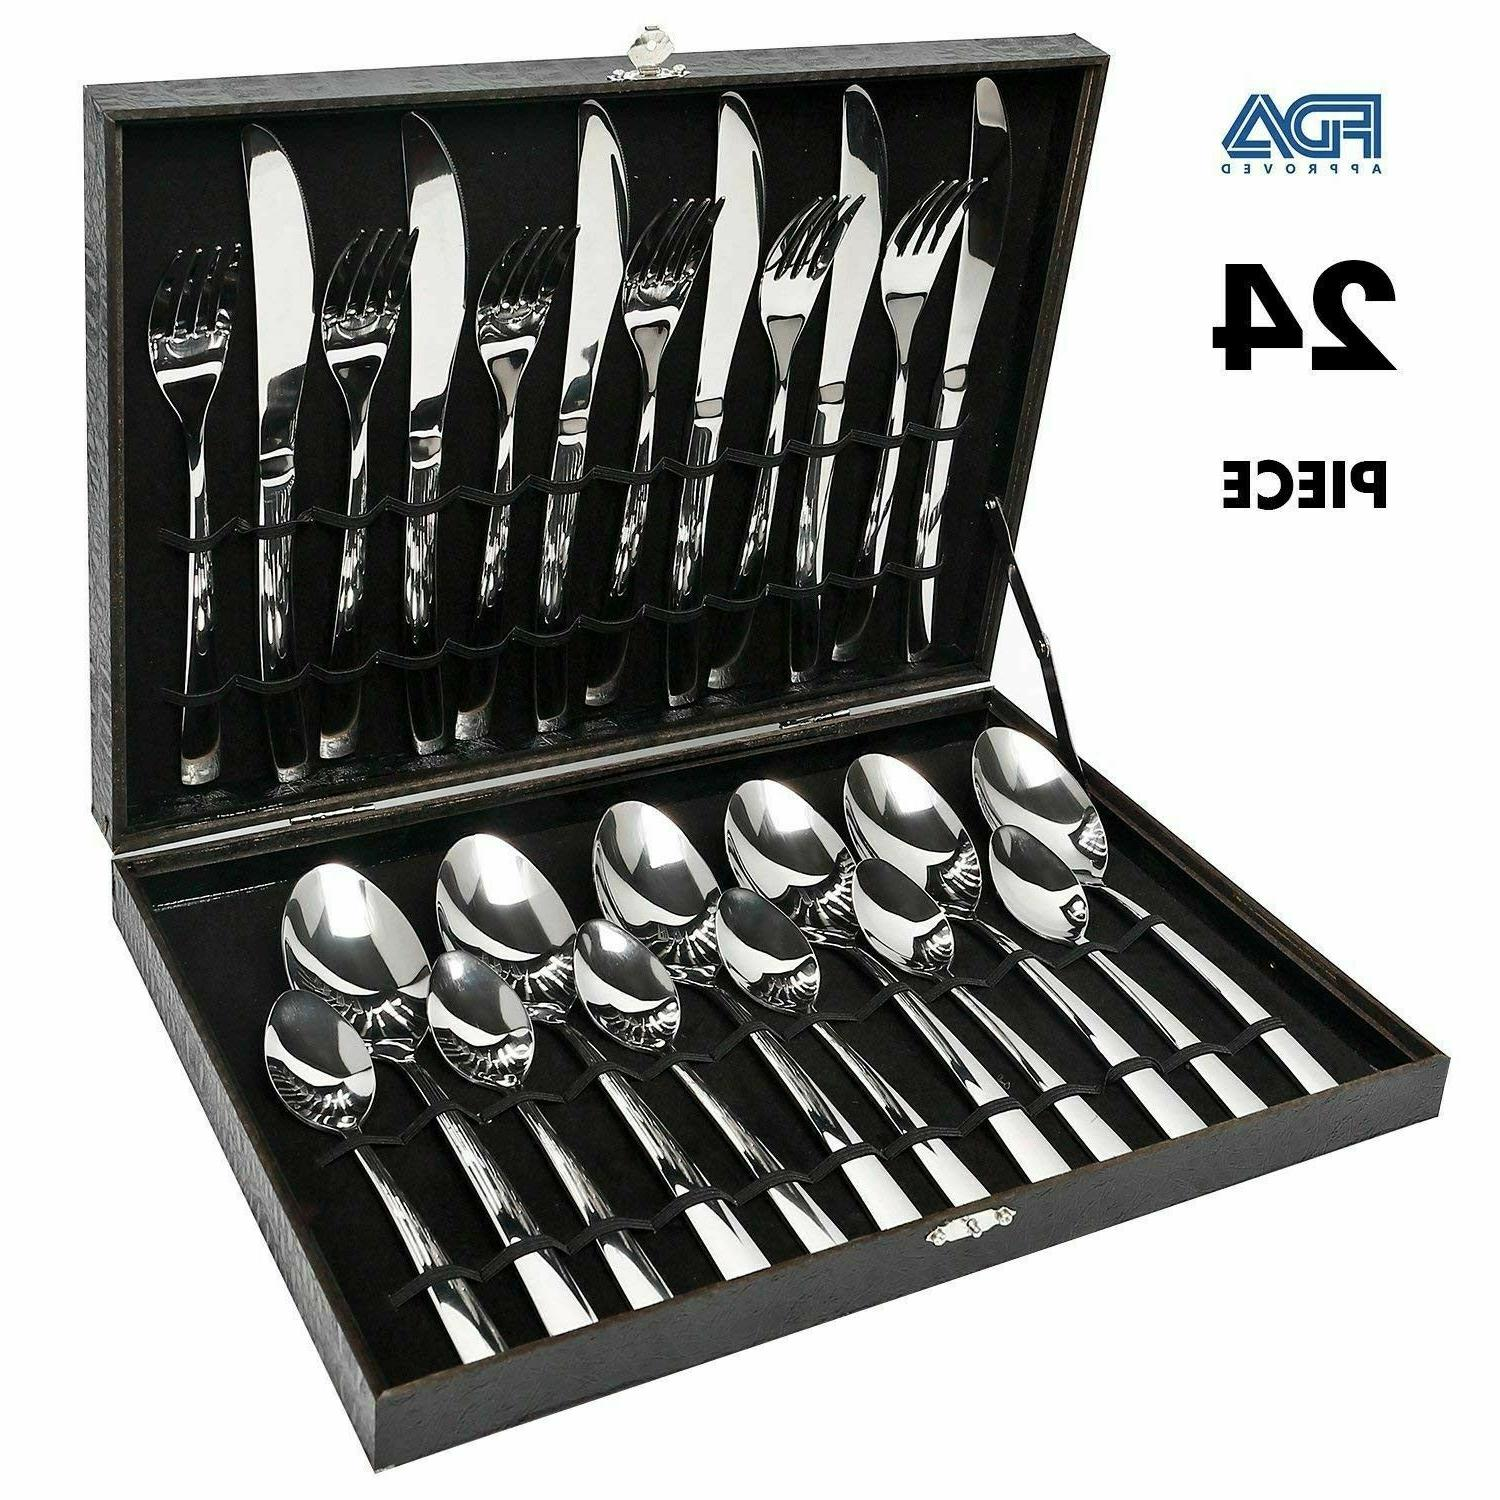 modern flatware set kitchen silverware large cutlery